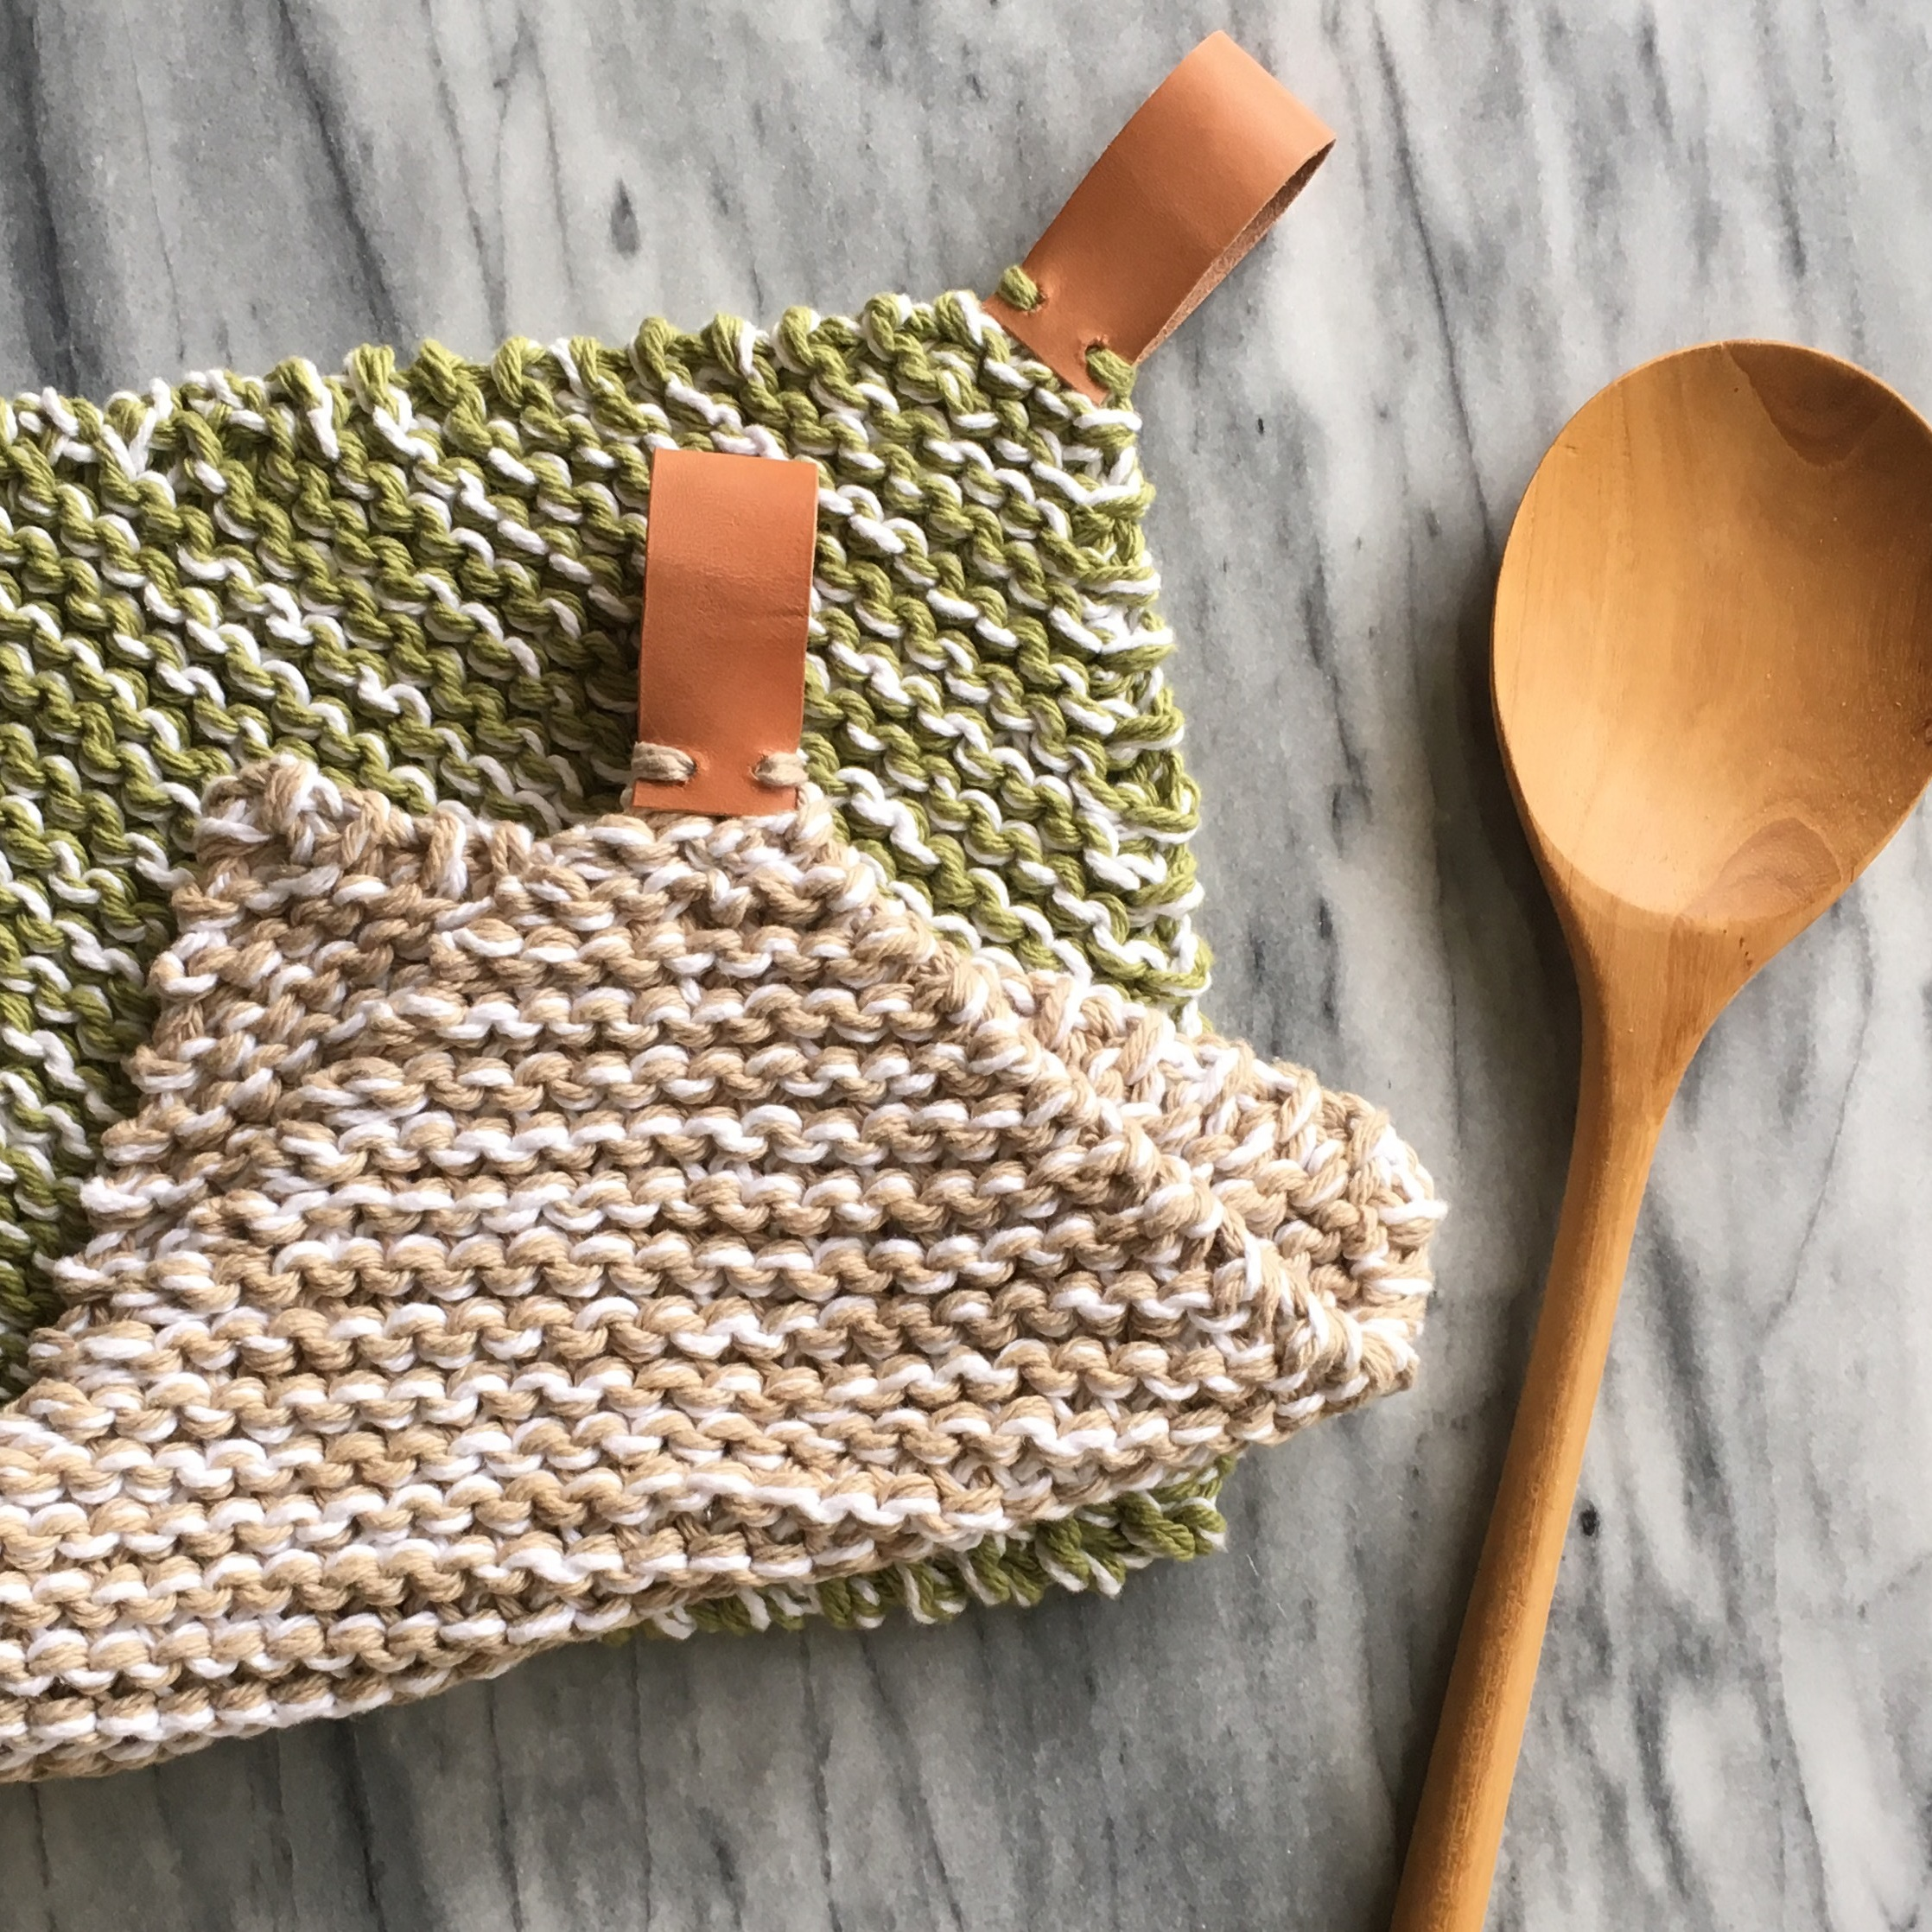 elisemade-knit-potholders-with-leather-loops